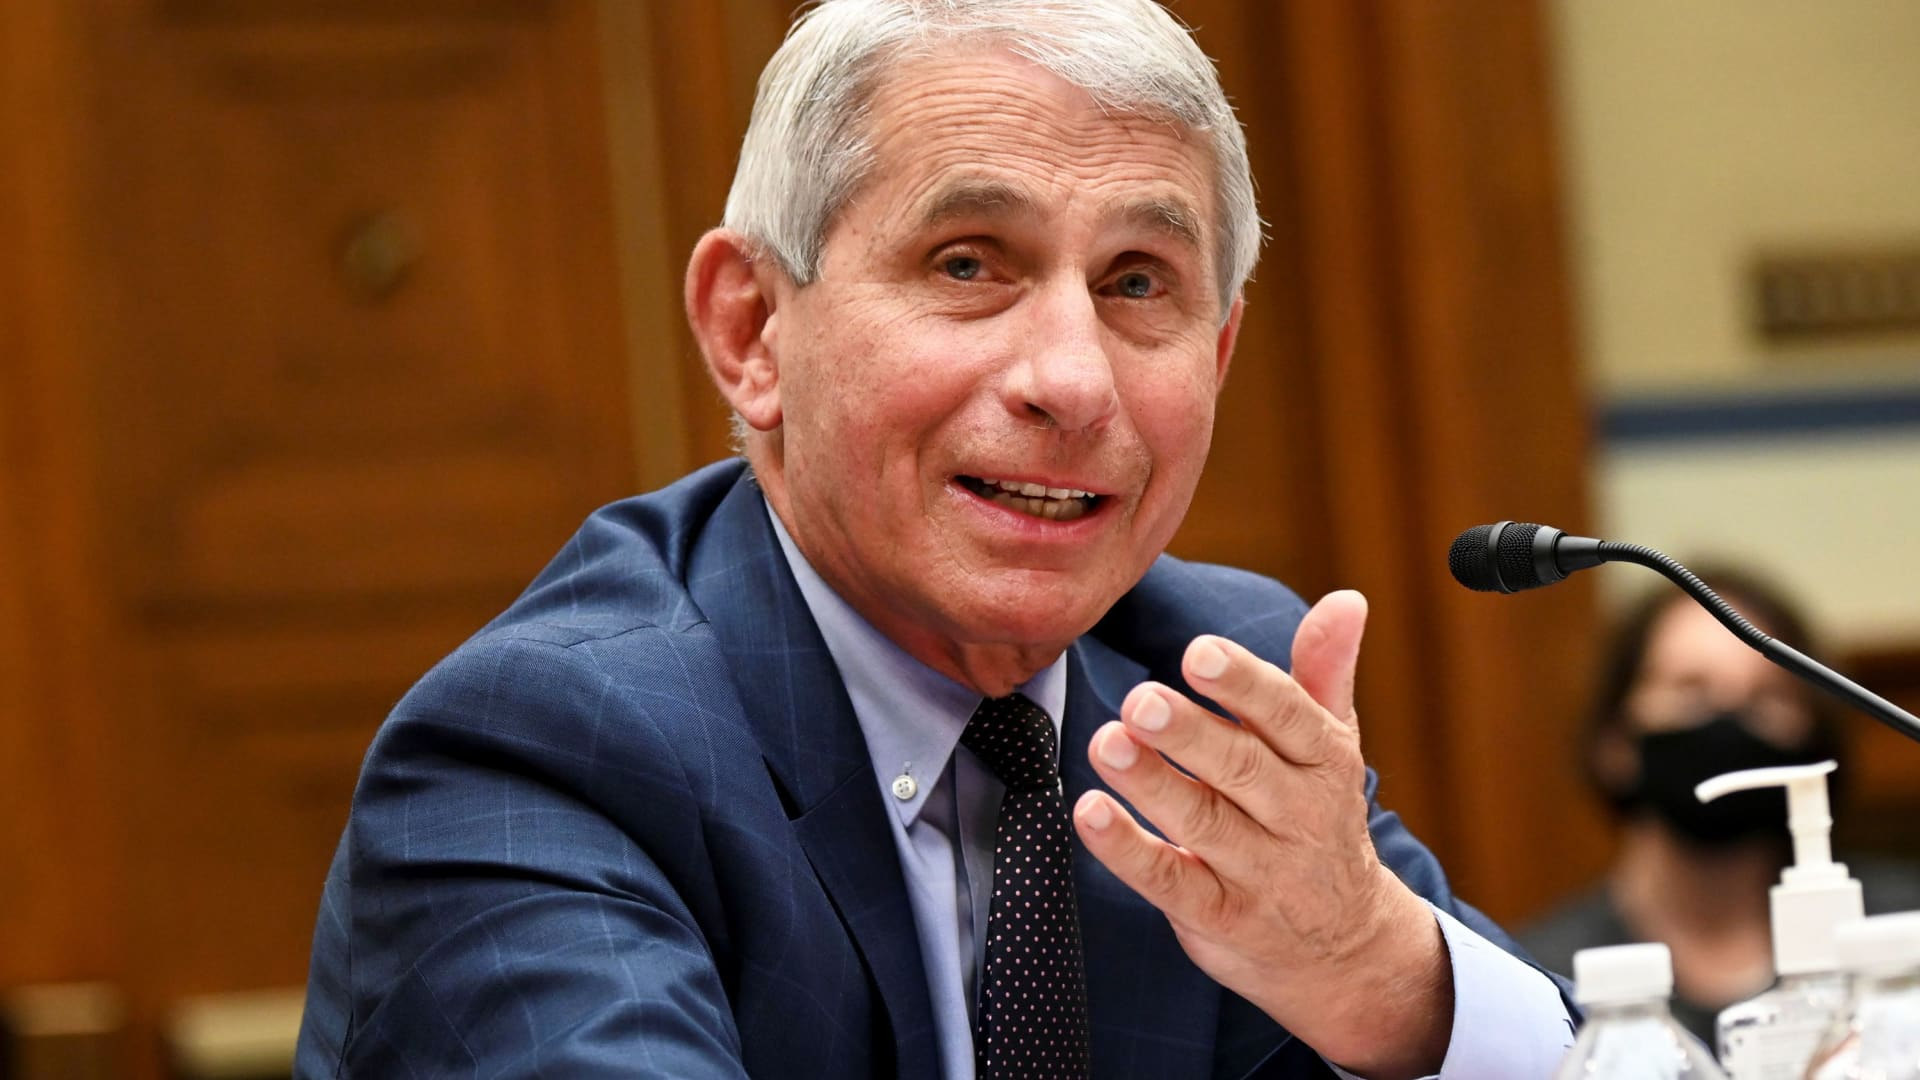 Anthony Fauci, director of the National Institute of Allergy and Infectious Diseases, speaks during a House Select Subcommittee on the Coronavirus Crisis hearing in Washington, D.C.